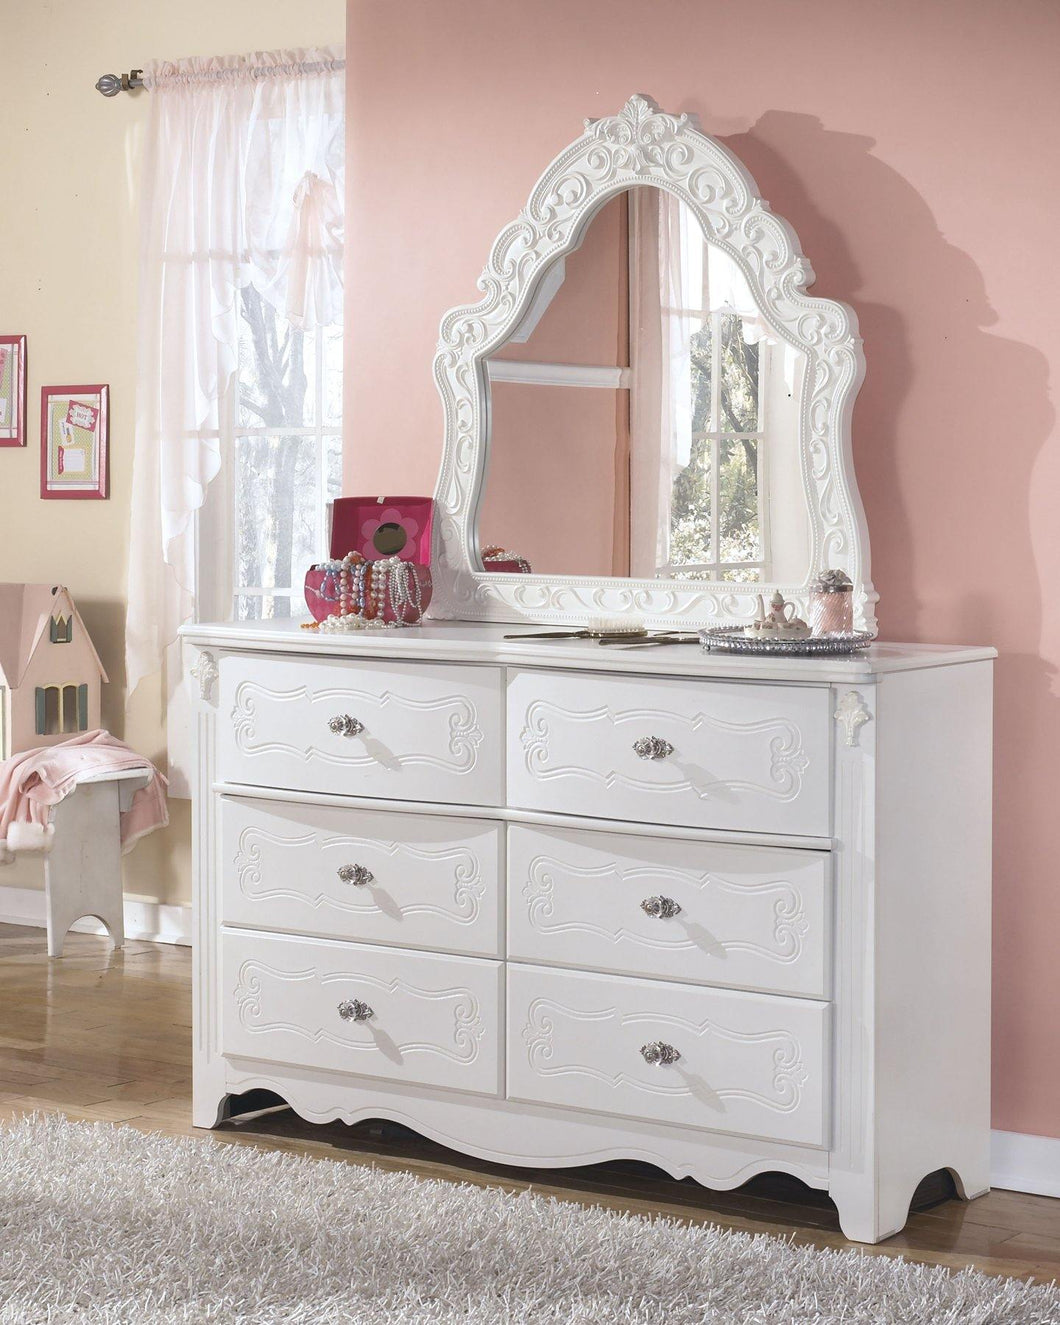 Exquisite Dresser and Mirror B188B52 Girls Bedroom Furniture By Ashley Furniture from sofafair